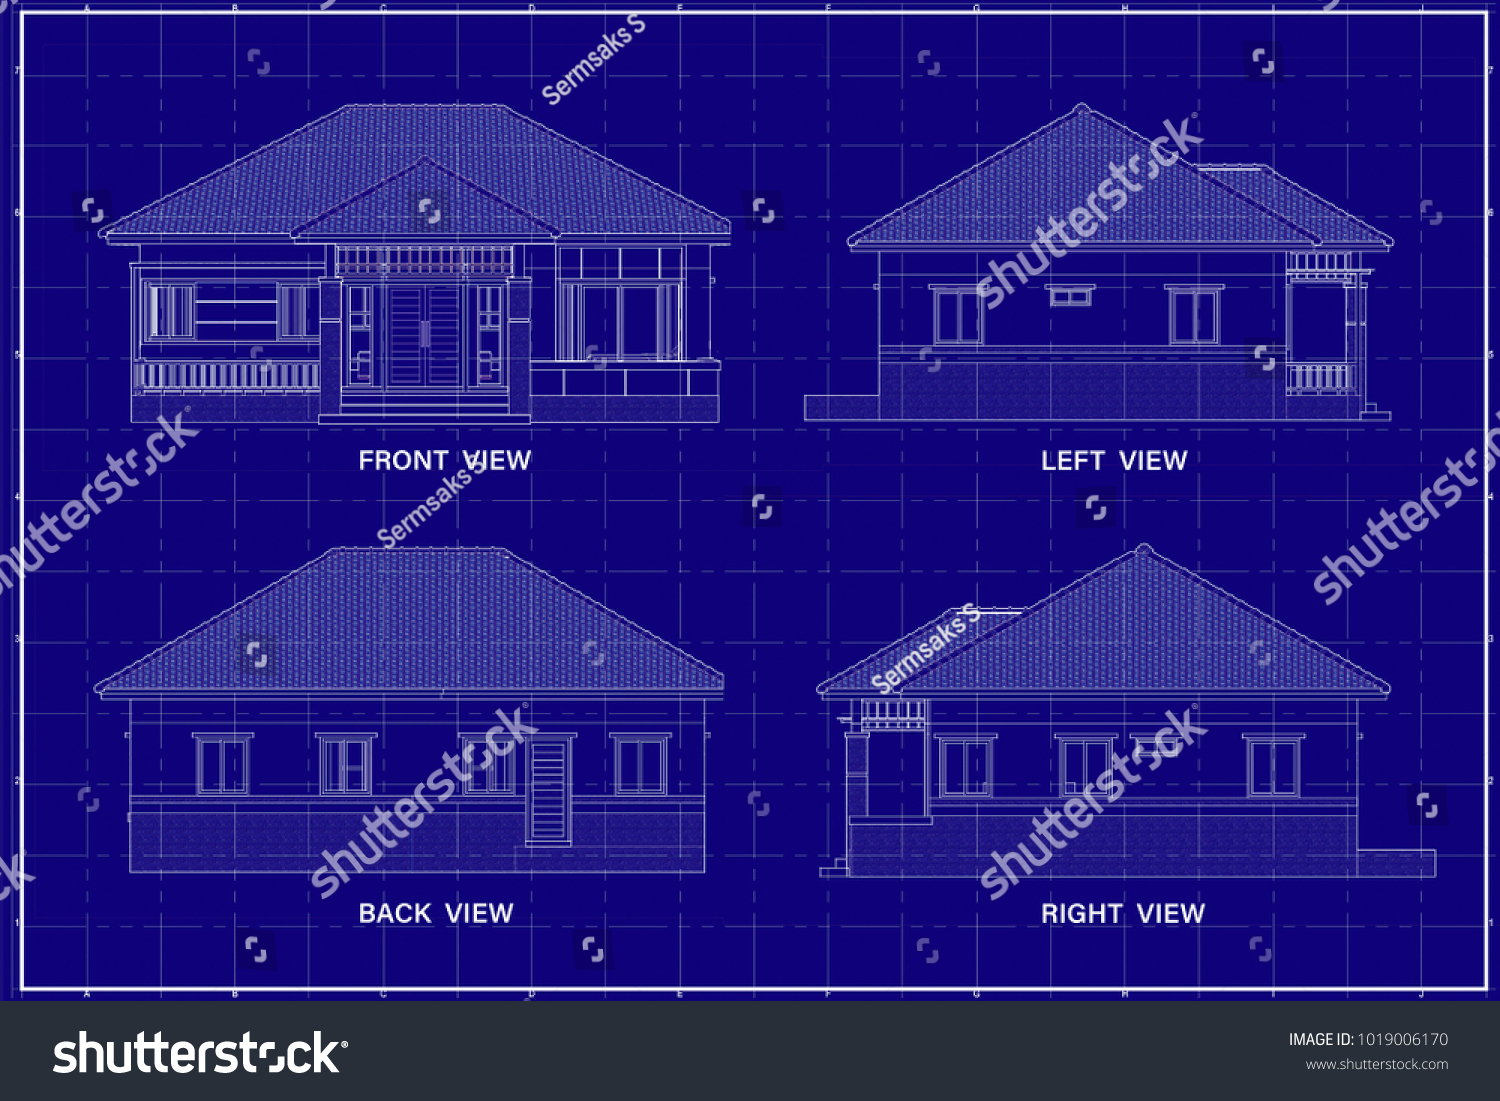 Architectural drawing elevation house on blueprint stock architectural drawing elevation house on blueprint stock illustration 1019006170 shutterstock malvernweather Image collections